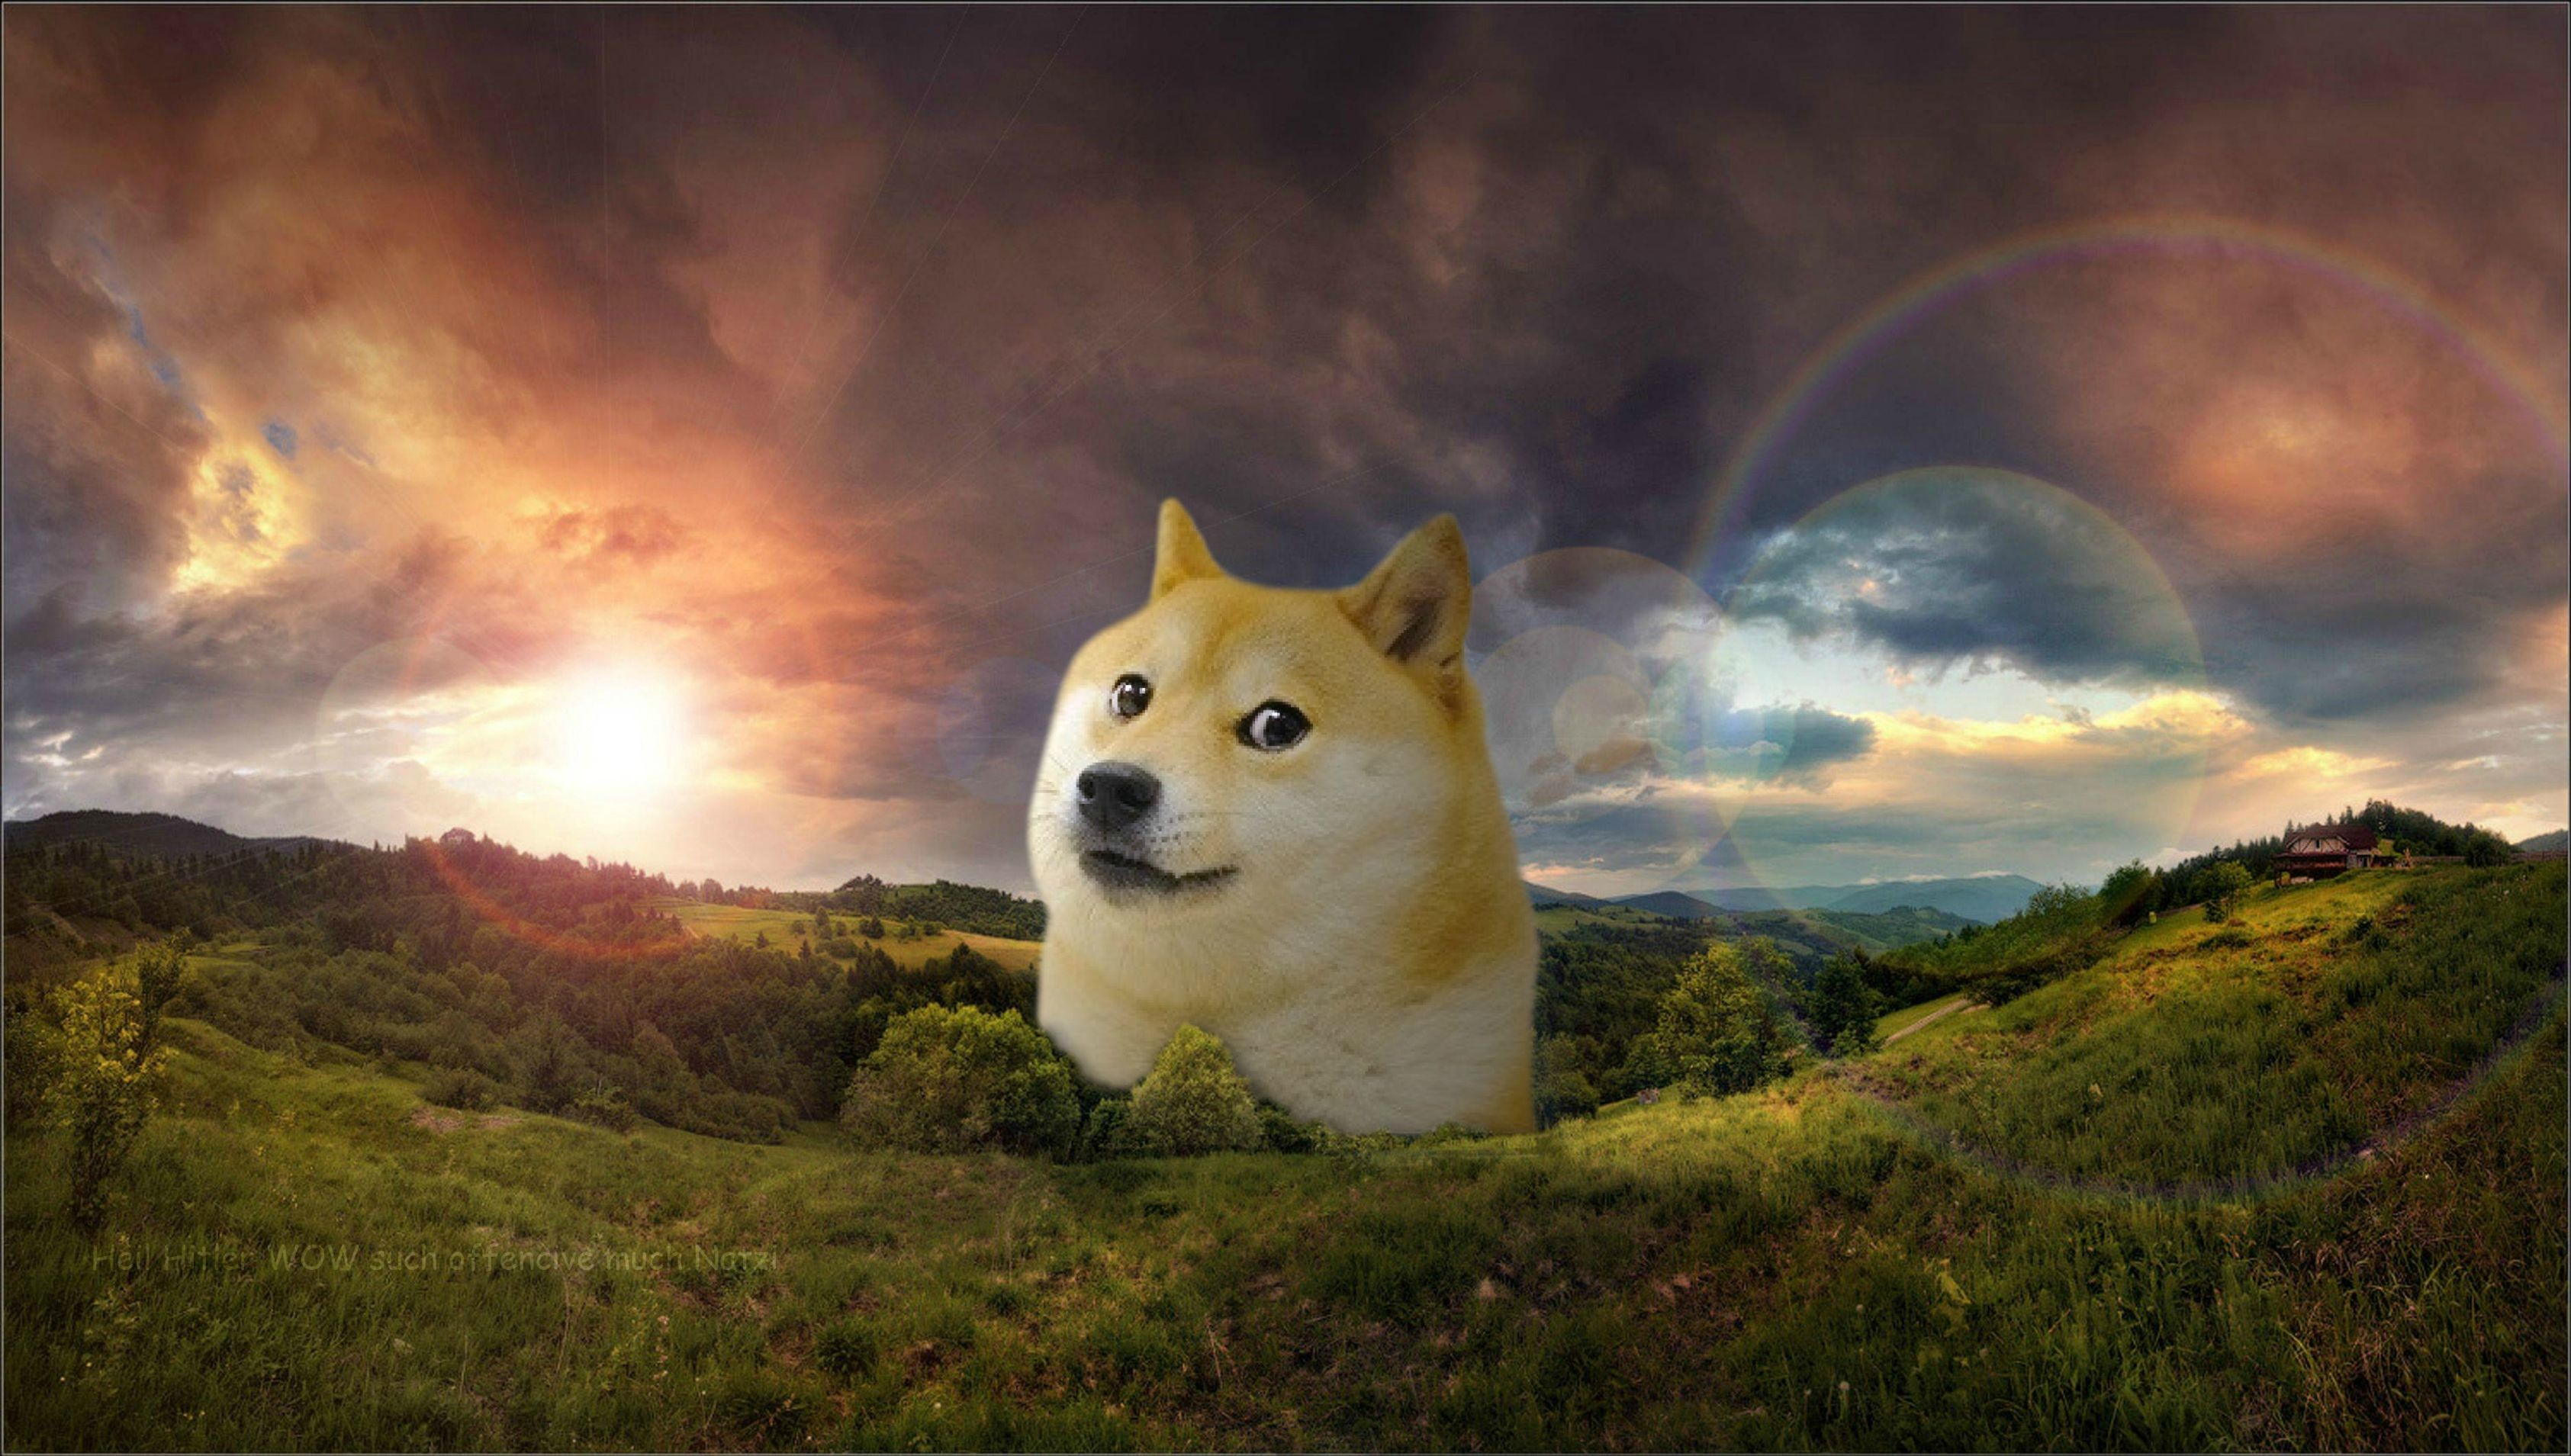 Res: 3370x1909, Doge Image For Desktop Wallpaper 3370 x 1909 px 1.89 MB iphone mac space